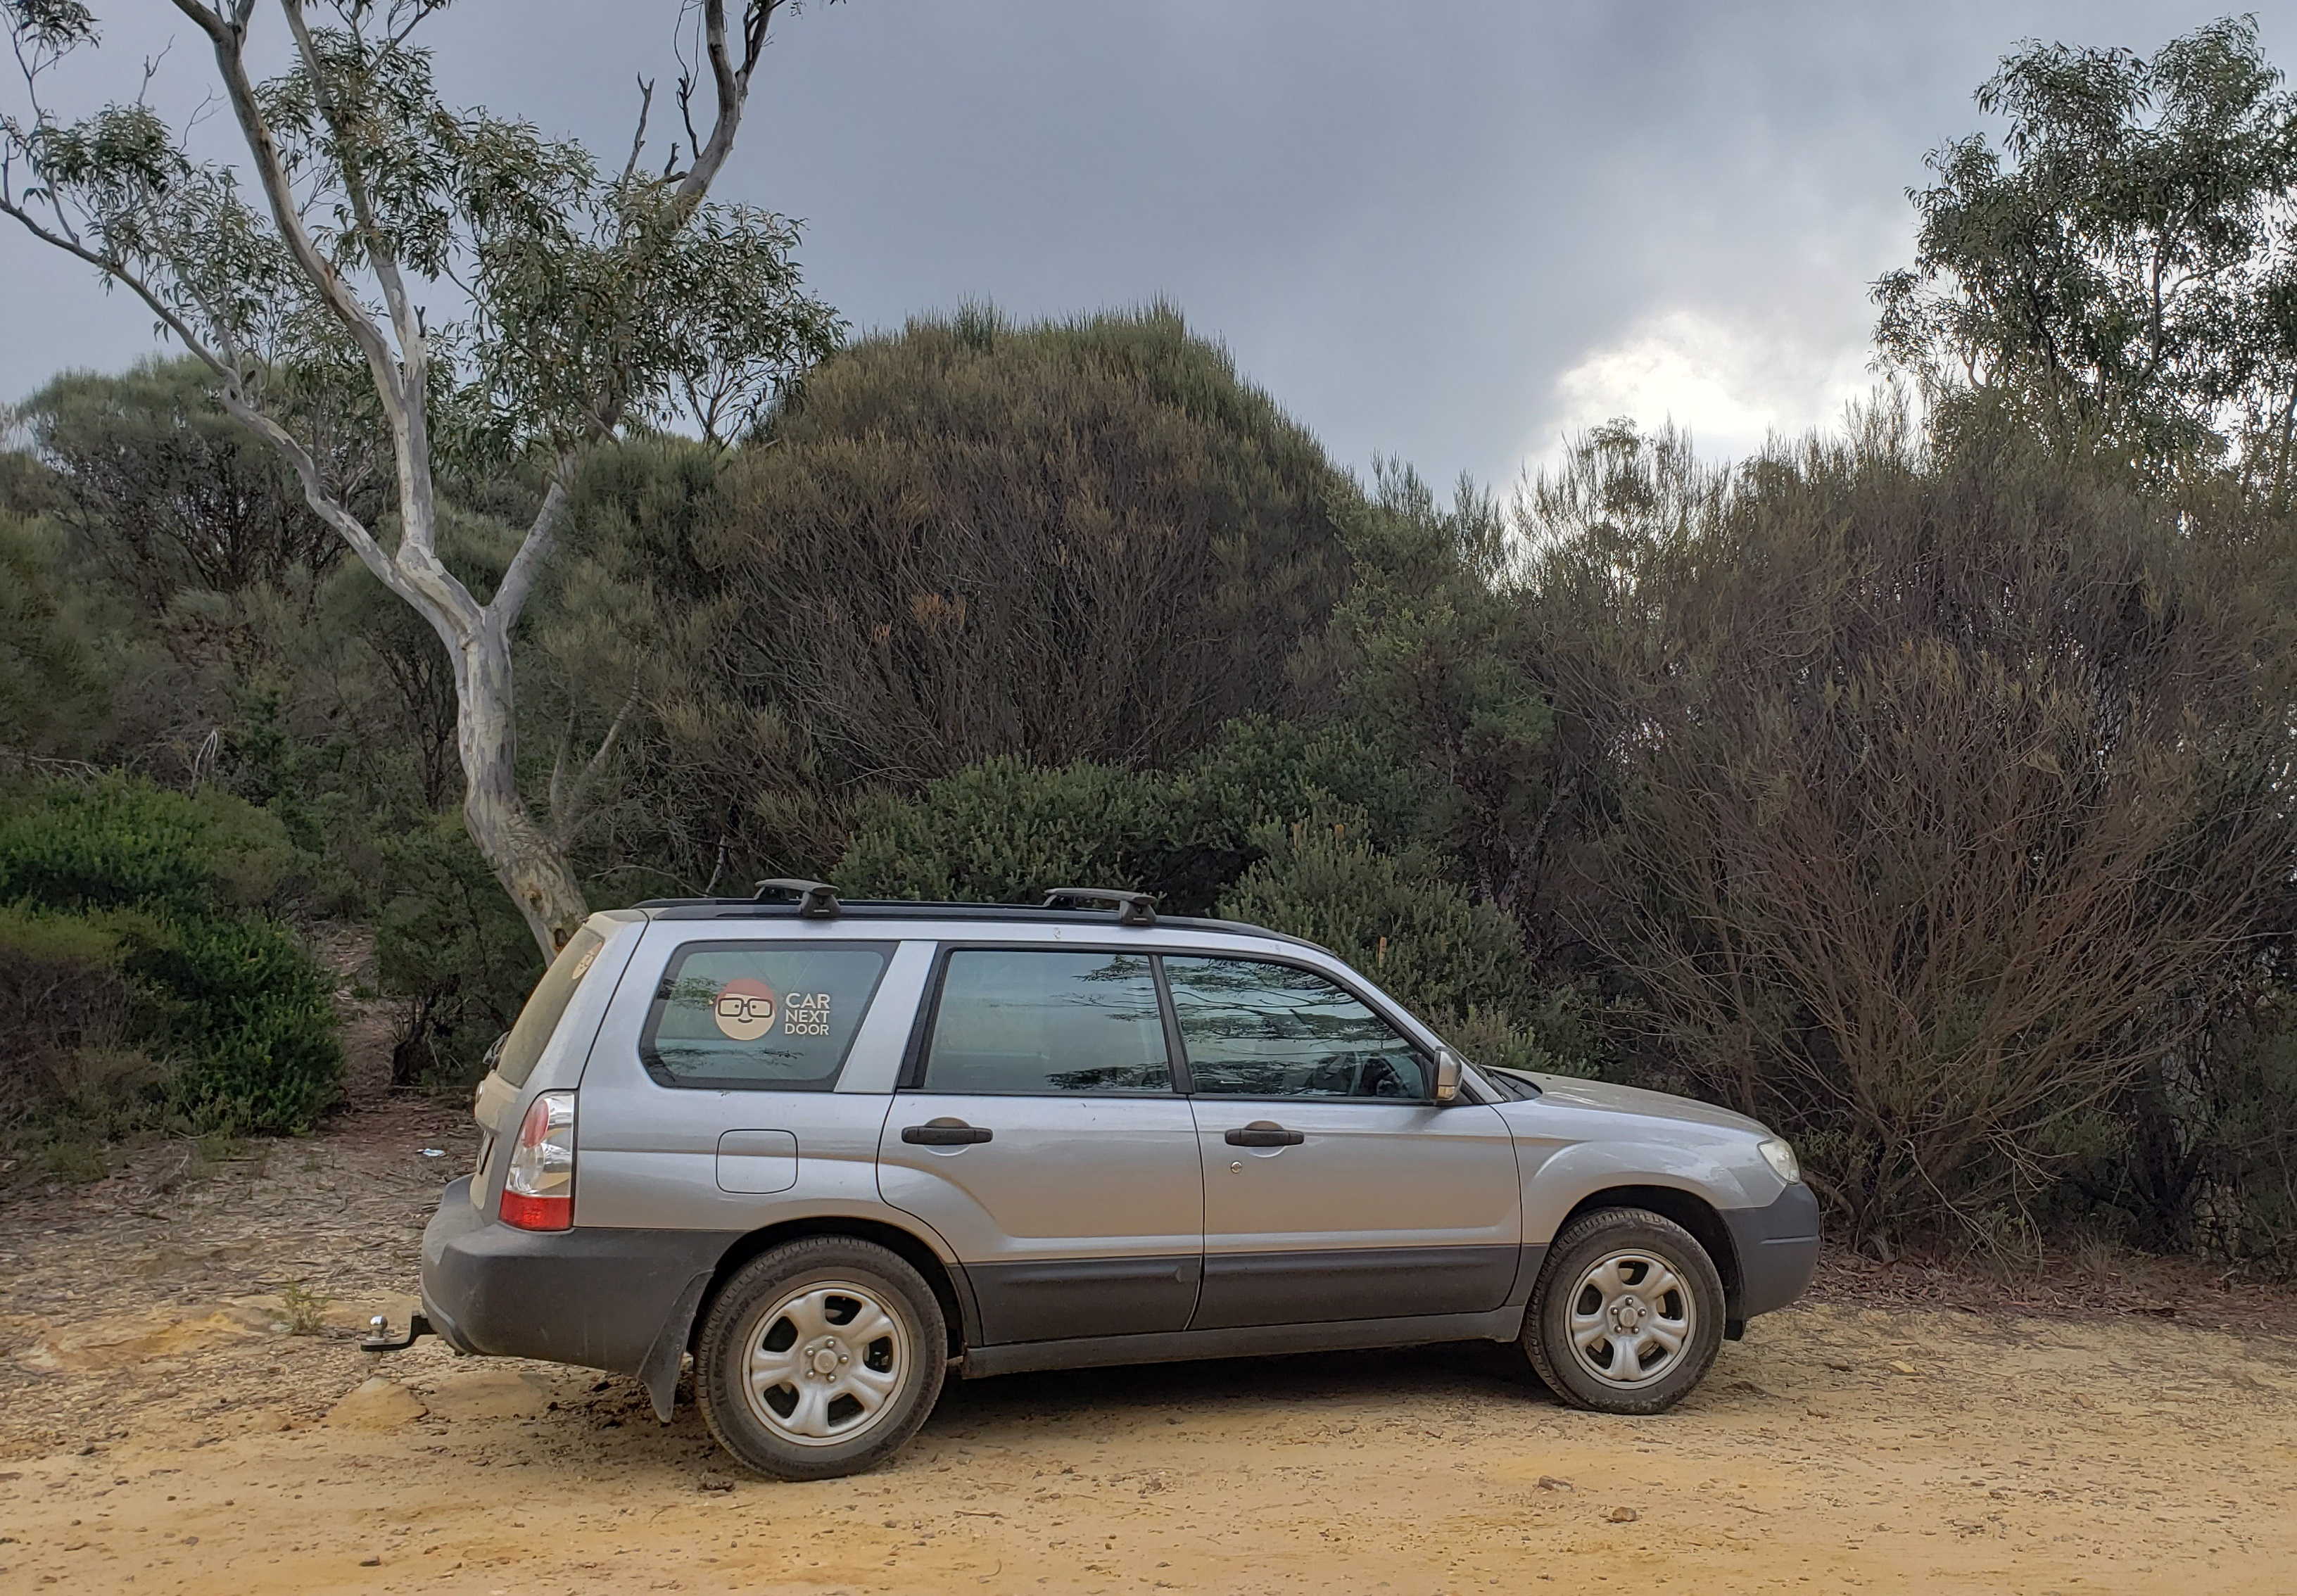 Picture of Lucinda's 2007 Subaru Forester